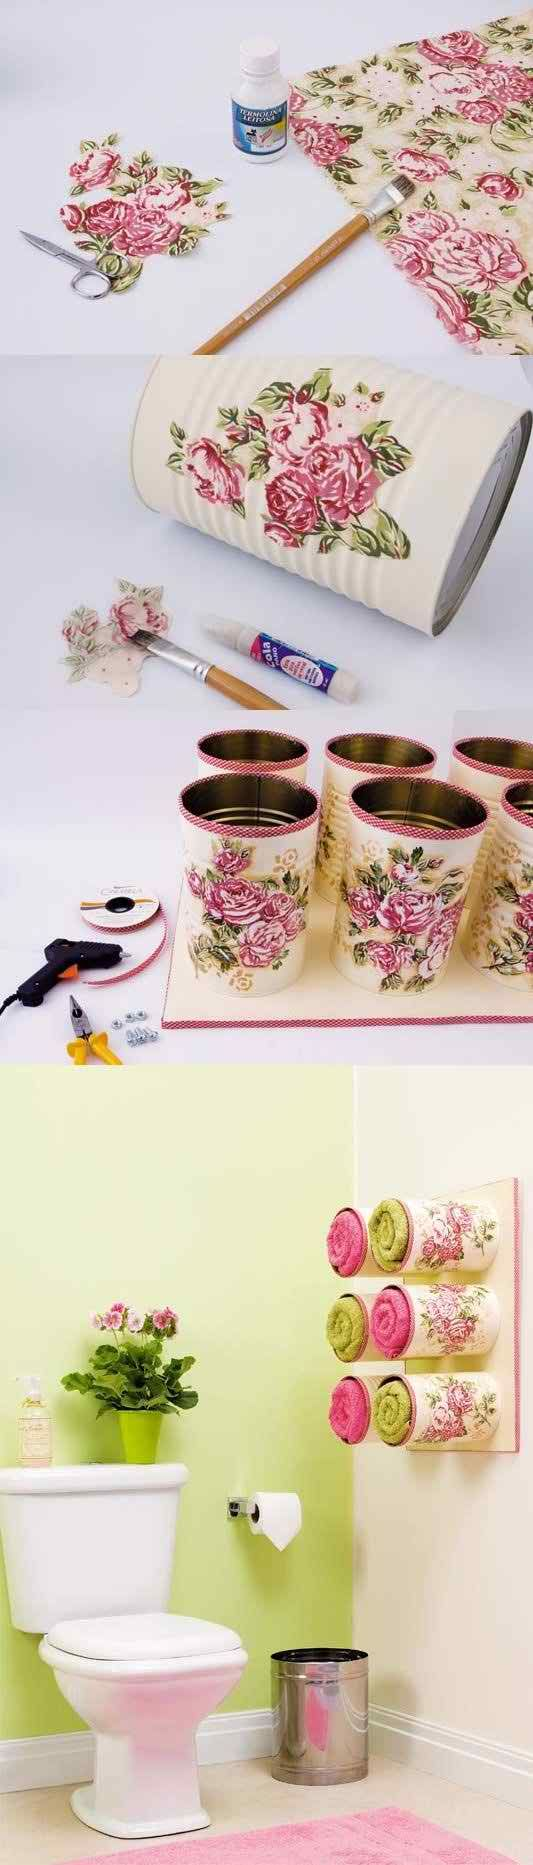 cute diy - Use tin cans to make easily towel storage. #Bathroomdecorating #DIY www.funcraftsclub.com